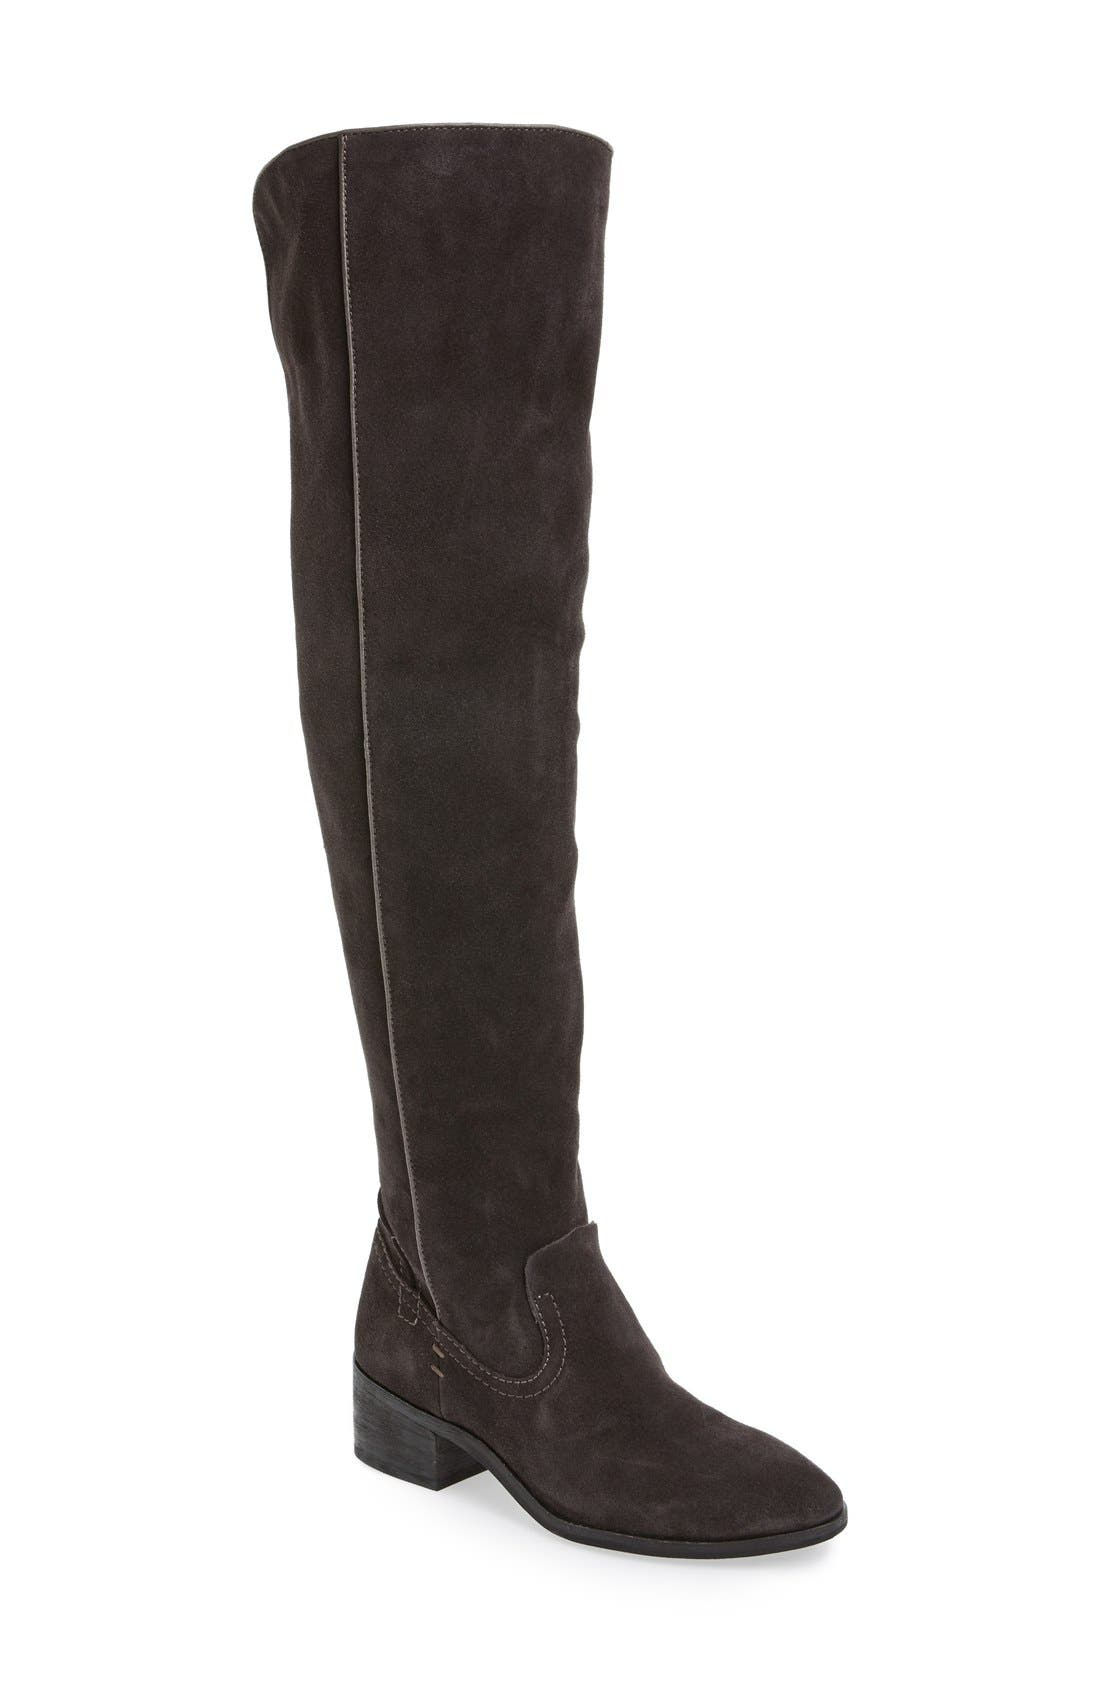 Main Image - Dolce Vita 'Kitt' Over the Knee Boot (Women)